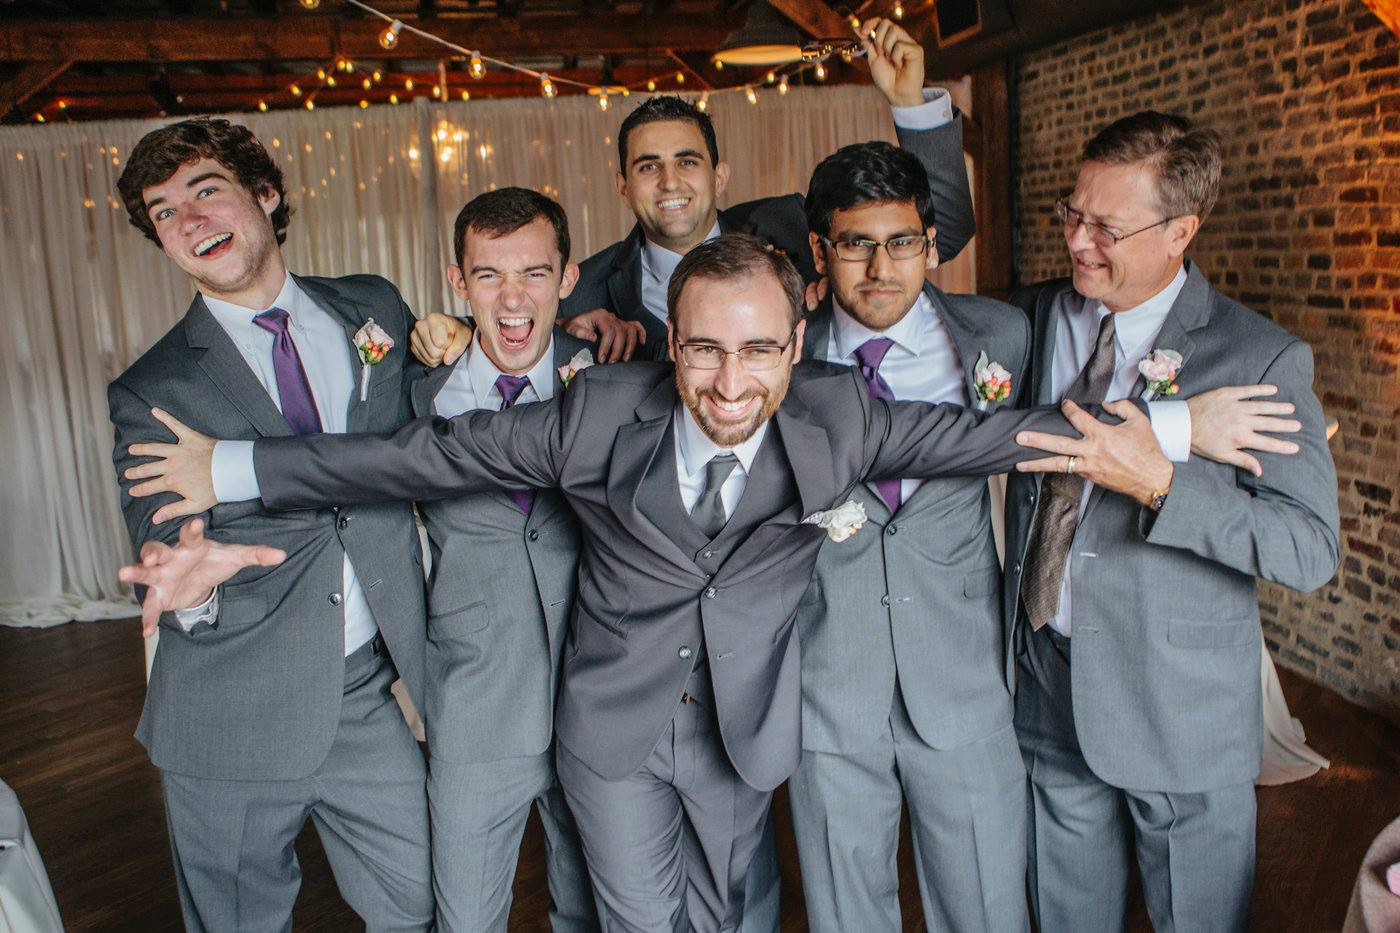 Page_Travs_Groom_Groomsmen_Simply_Yours_Weddings_Houston_Station_Enchanted_Florist_Matt_Andrews_Photography.jpeg